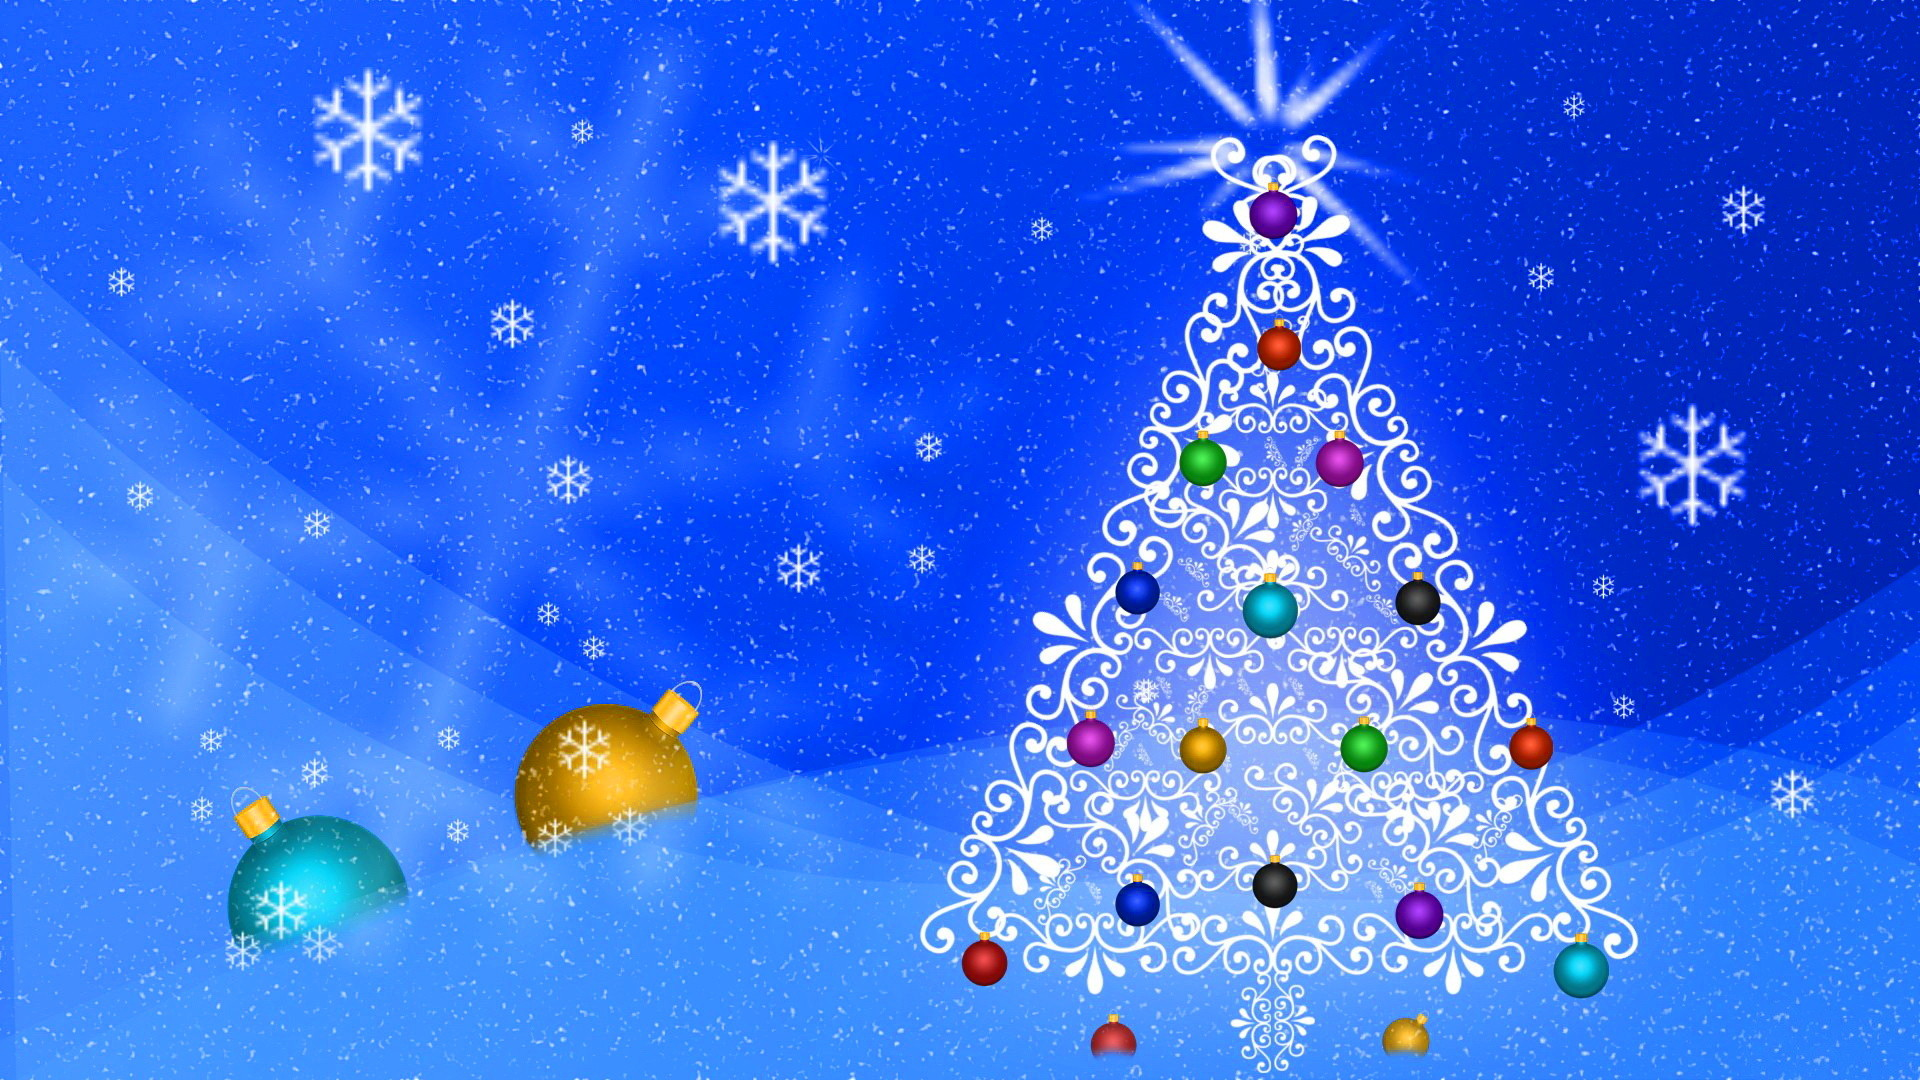 3d Xmas Tree Live Wallpaper Christmas Tree Background Wallpaper 79 Images